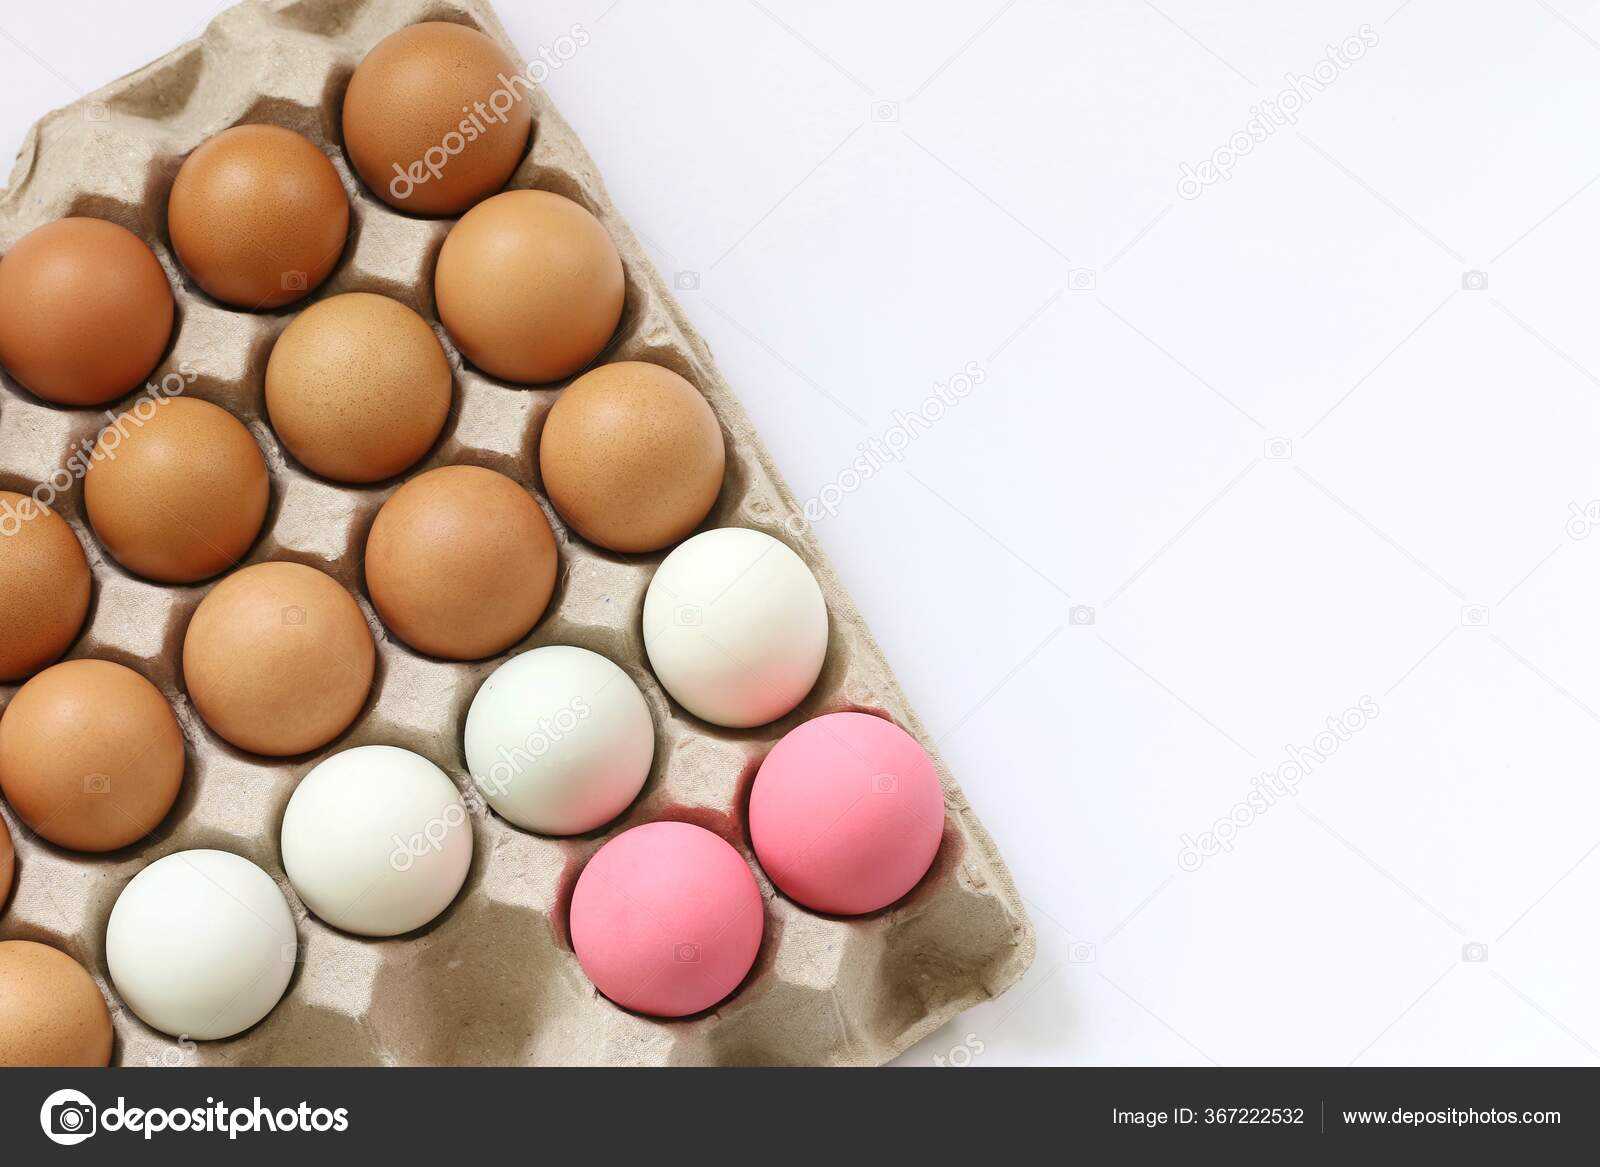 Fresh Eggs White Background Concept Food Life Abstract Indicated Differentiate Stock Photo C Sonsurikhb Gmail Com 367222532